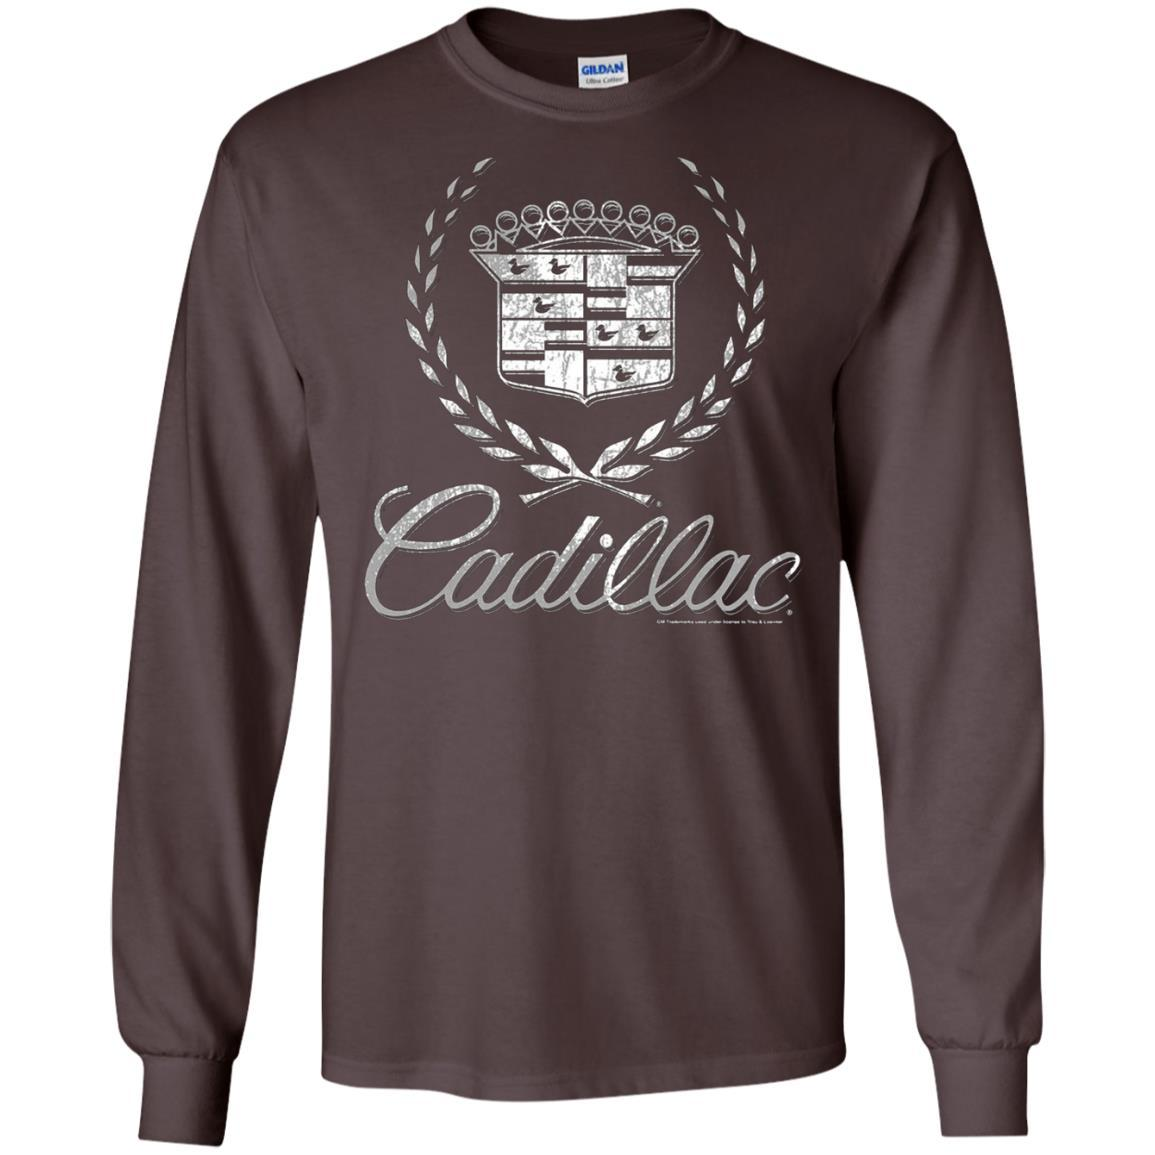 Cadillac Logo T-Shirt Classic Look - LS T-Shirt Style / Color / Size